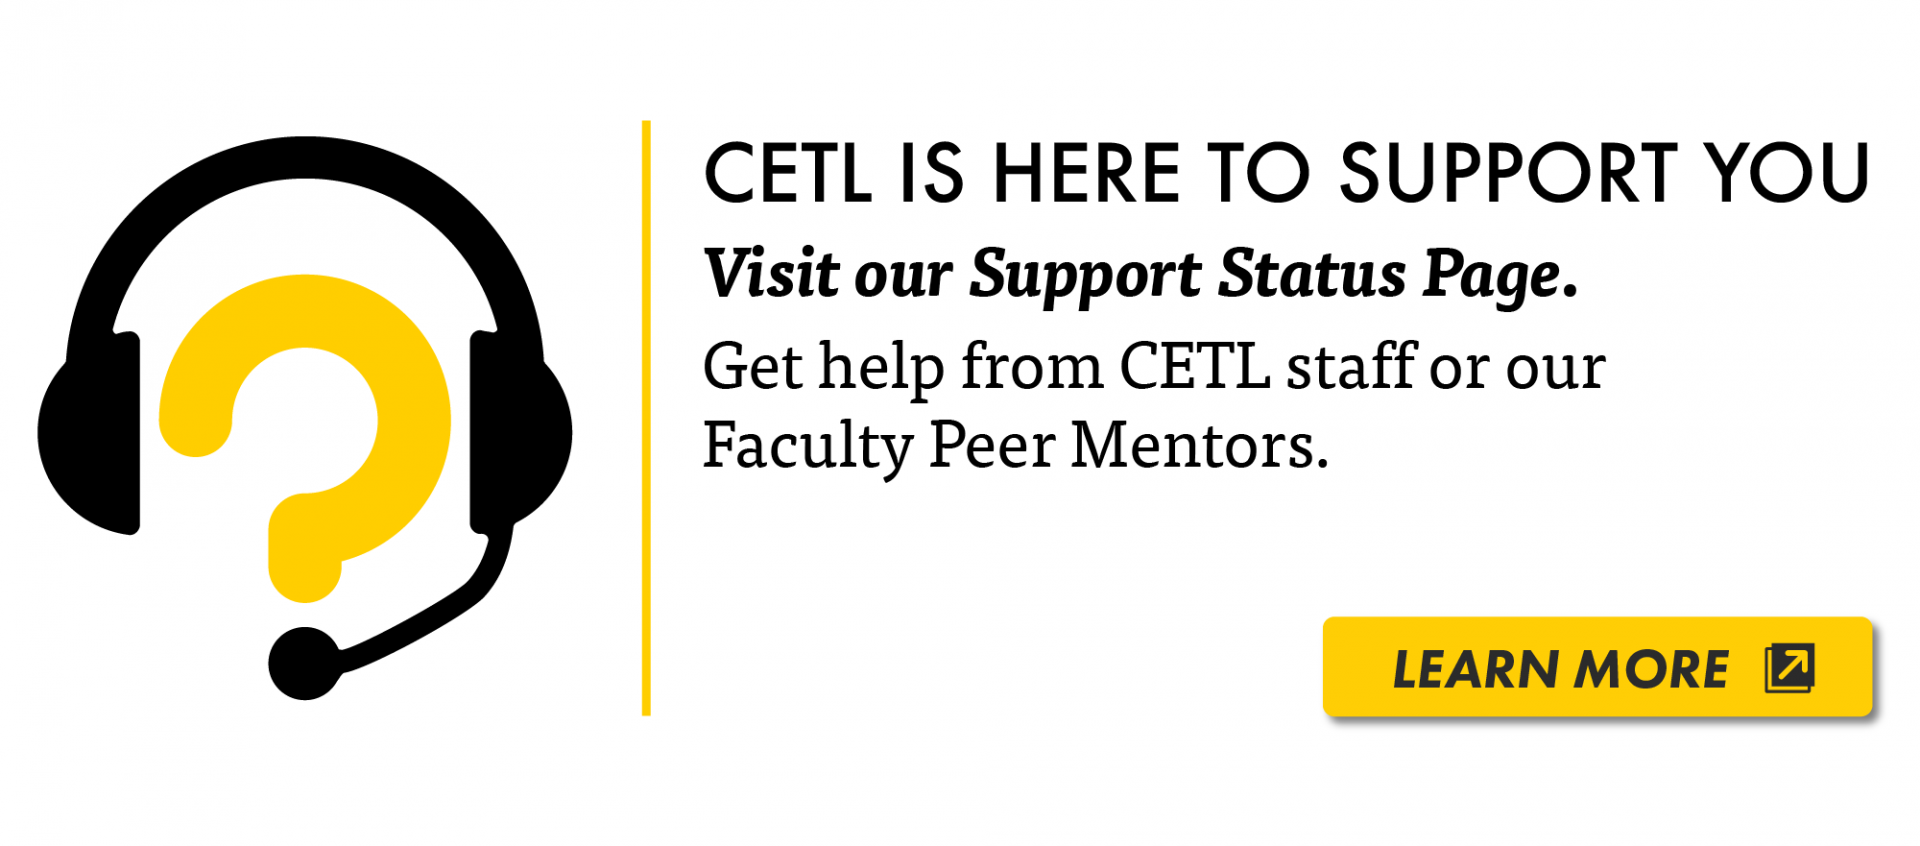 CETL is here for you